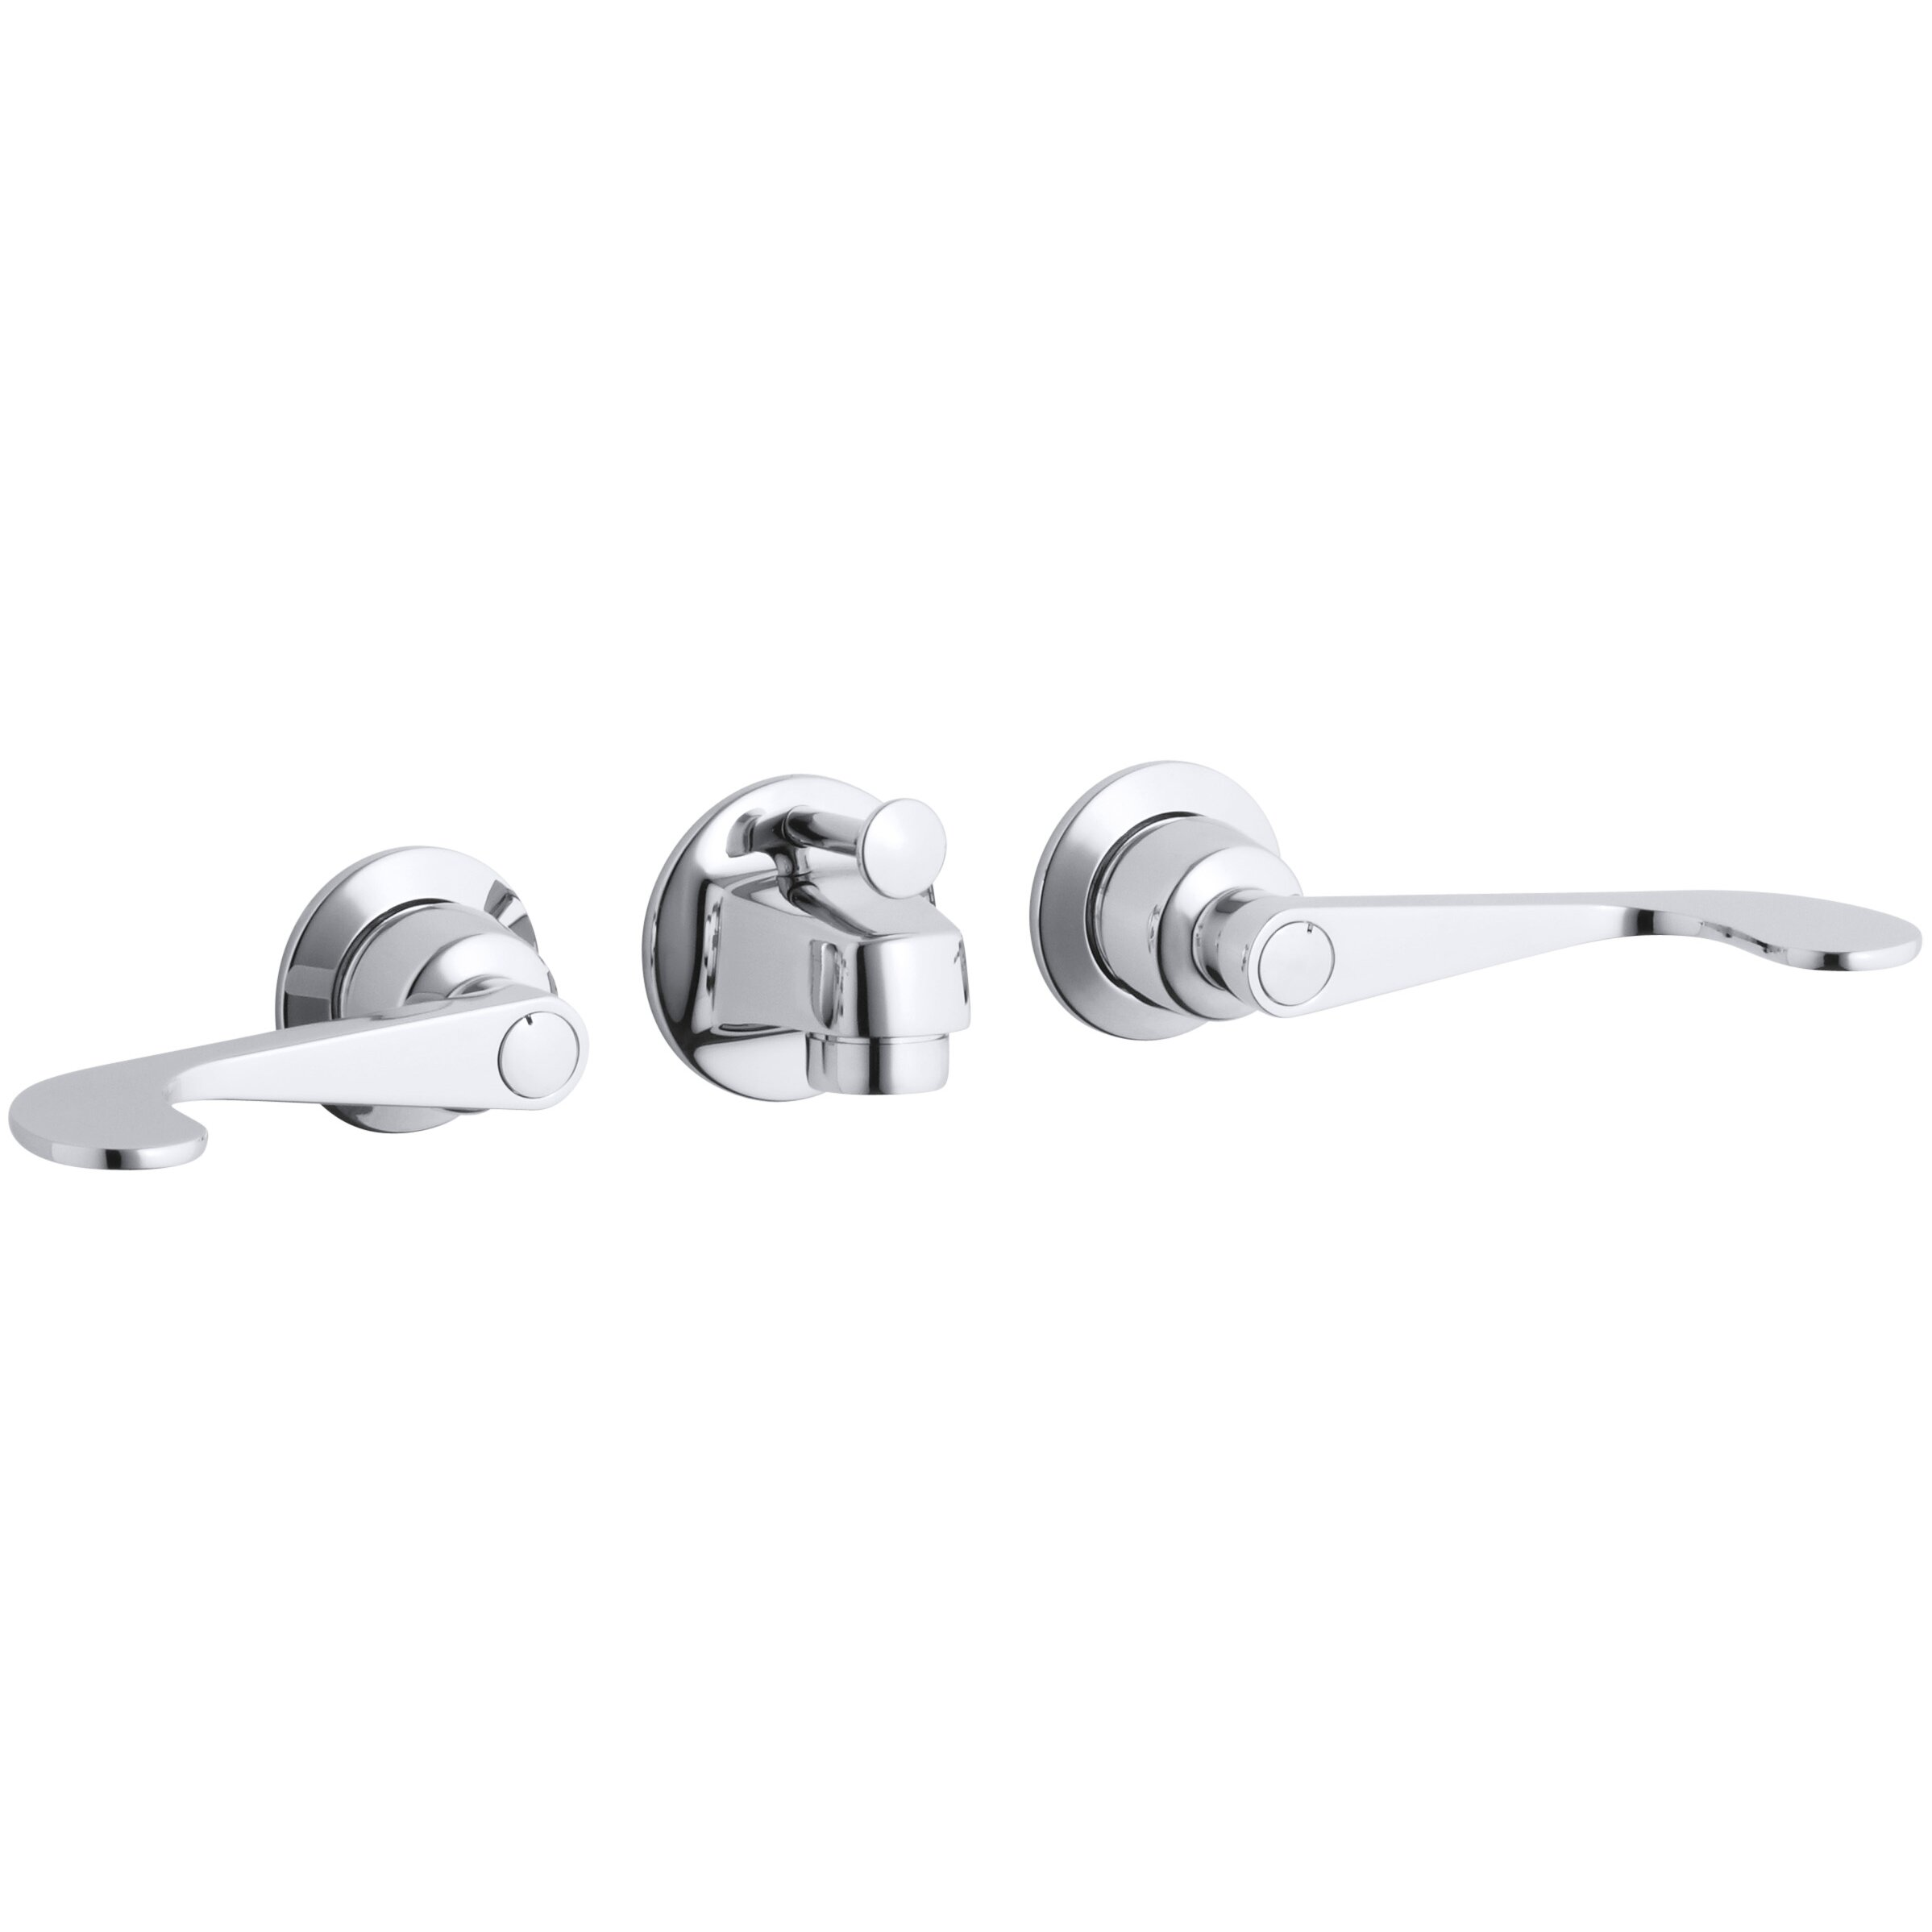 Kohler Triton Shelf Back Commercial Bathroom Sink Faucet With Pop Up Drain And Wristblade Lever